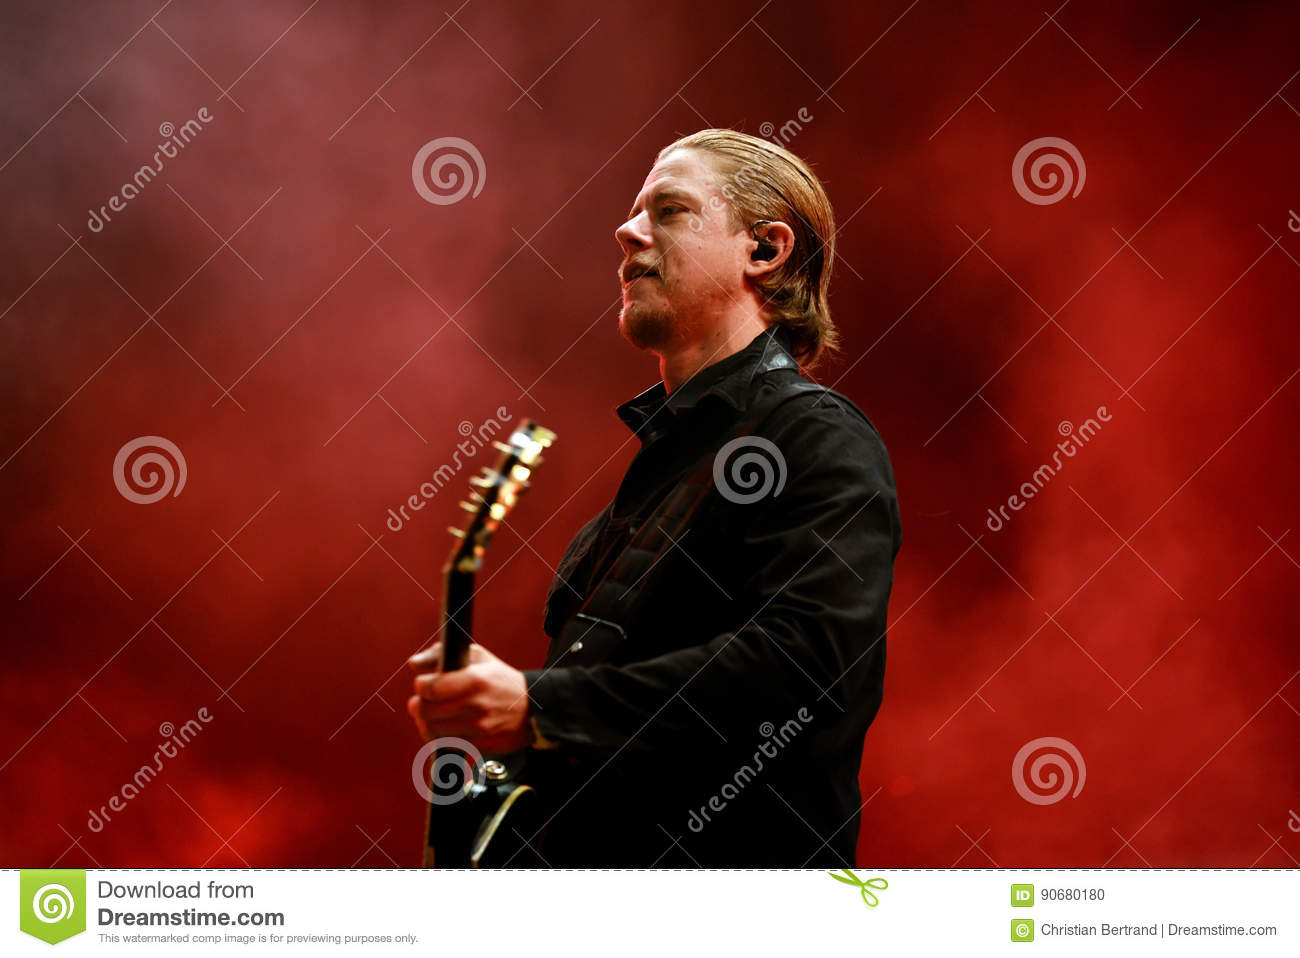 paul banks frontman of interpol band performs at primavera sound